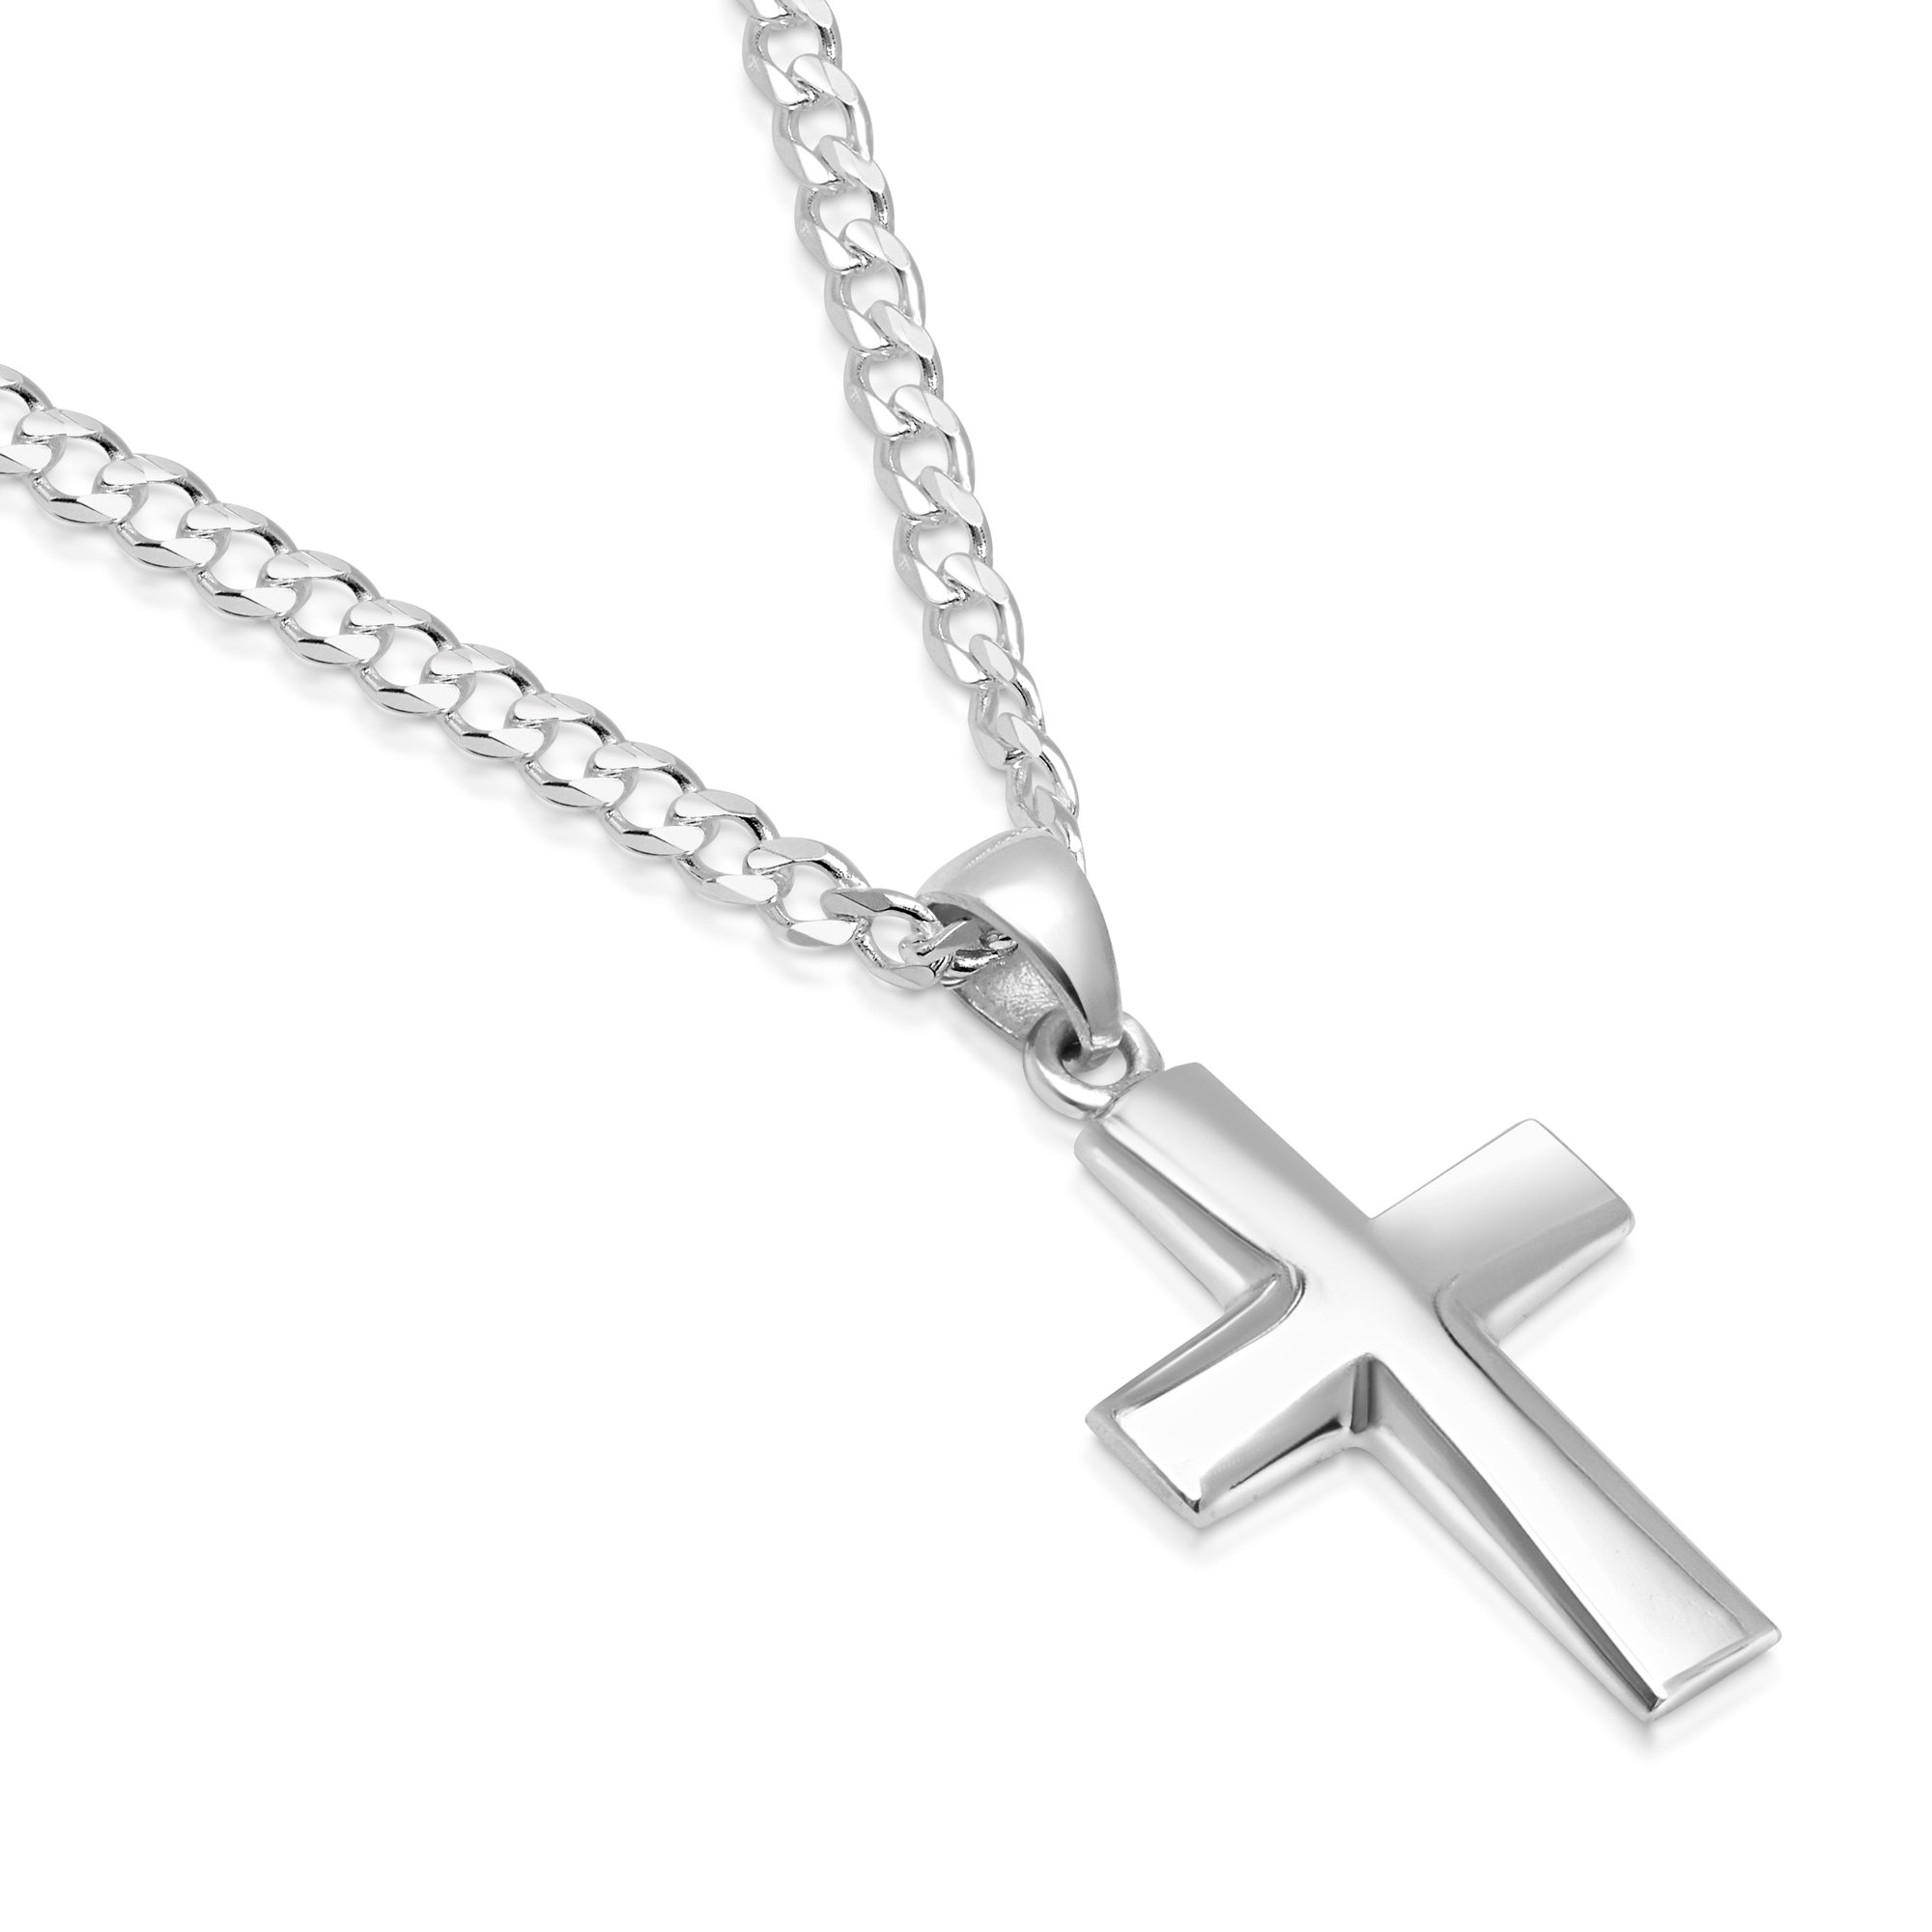 Sterling Silver Plain Cross Pendant Italian Made 3mm Curb Chain Necklace - 080 3mm - 20''